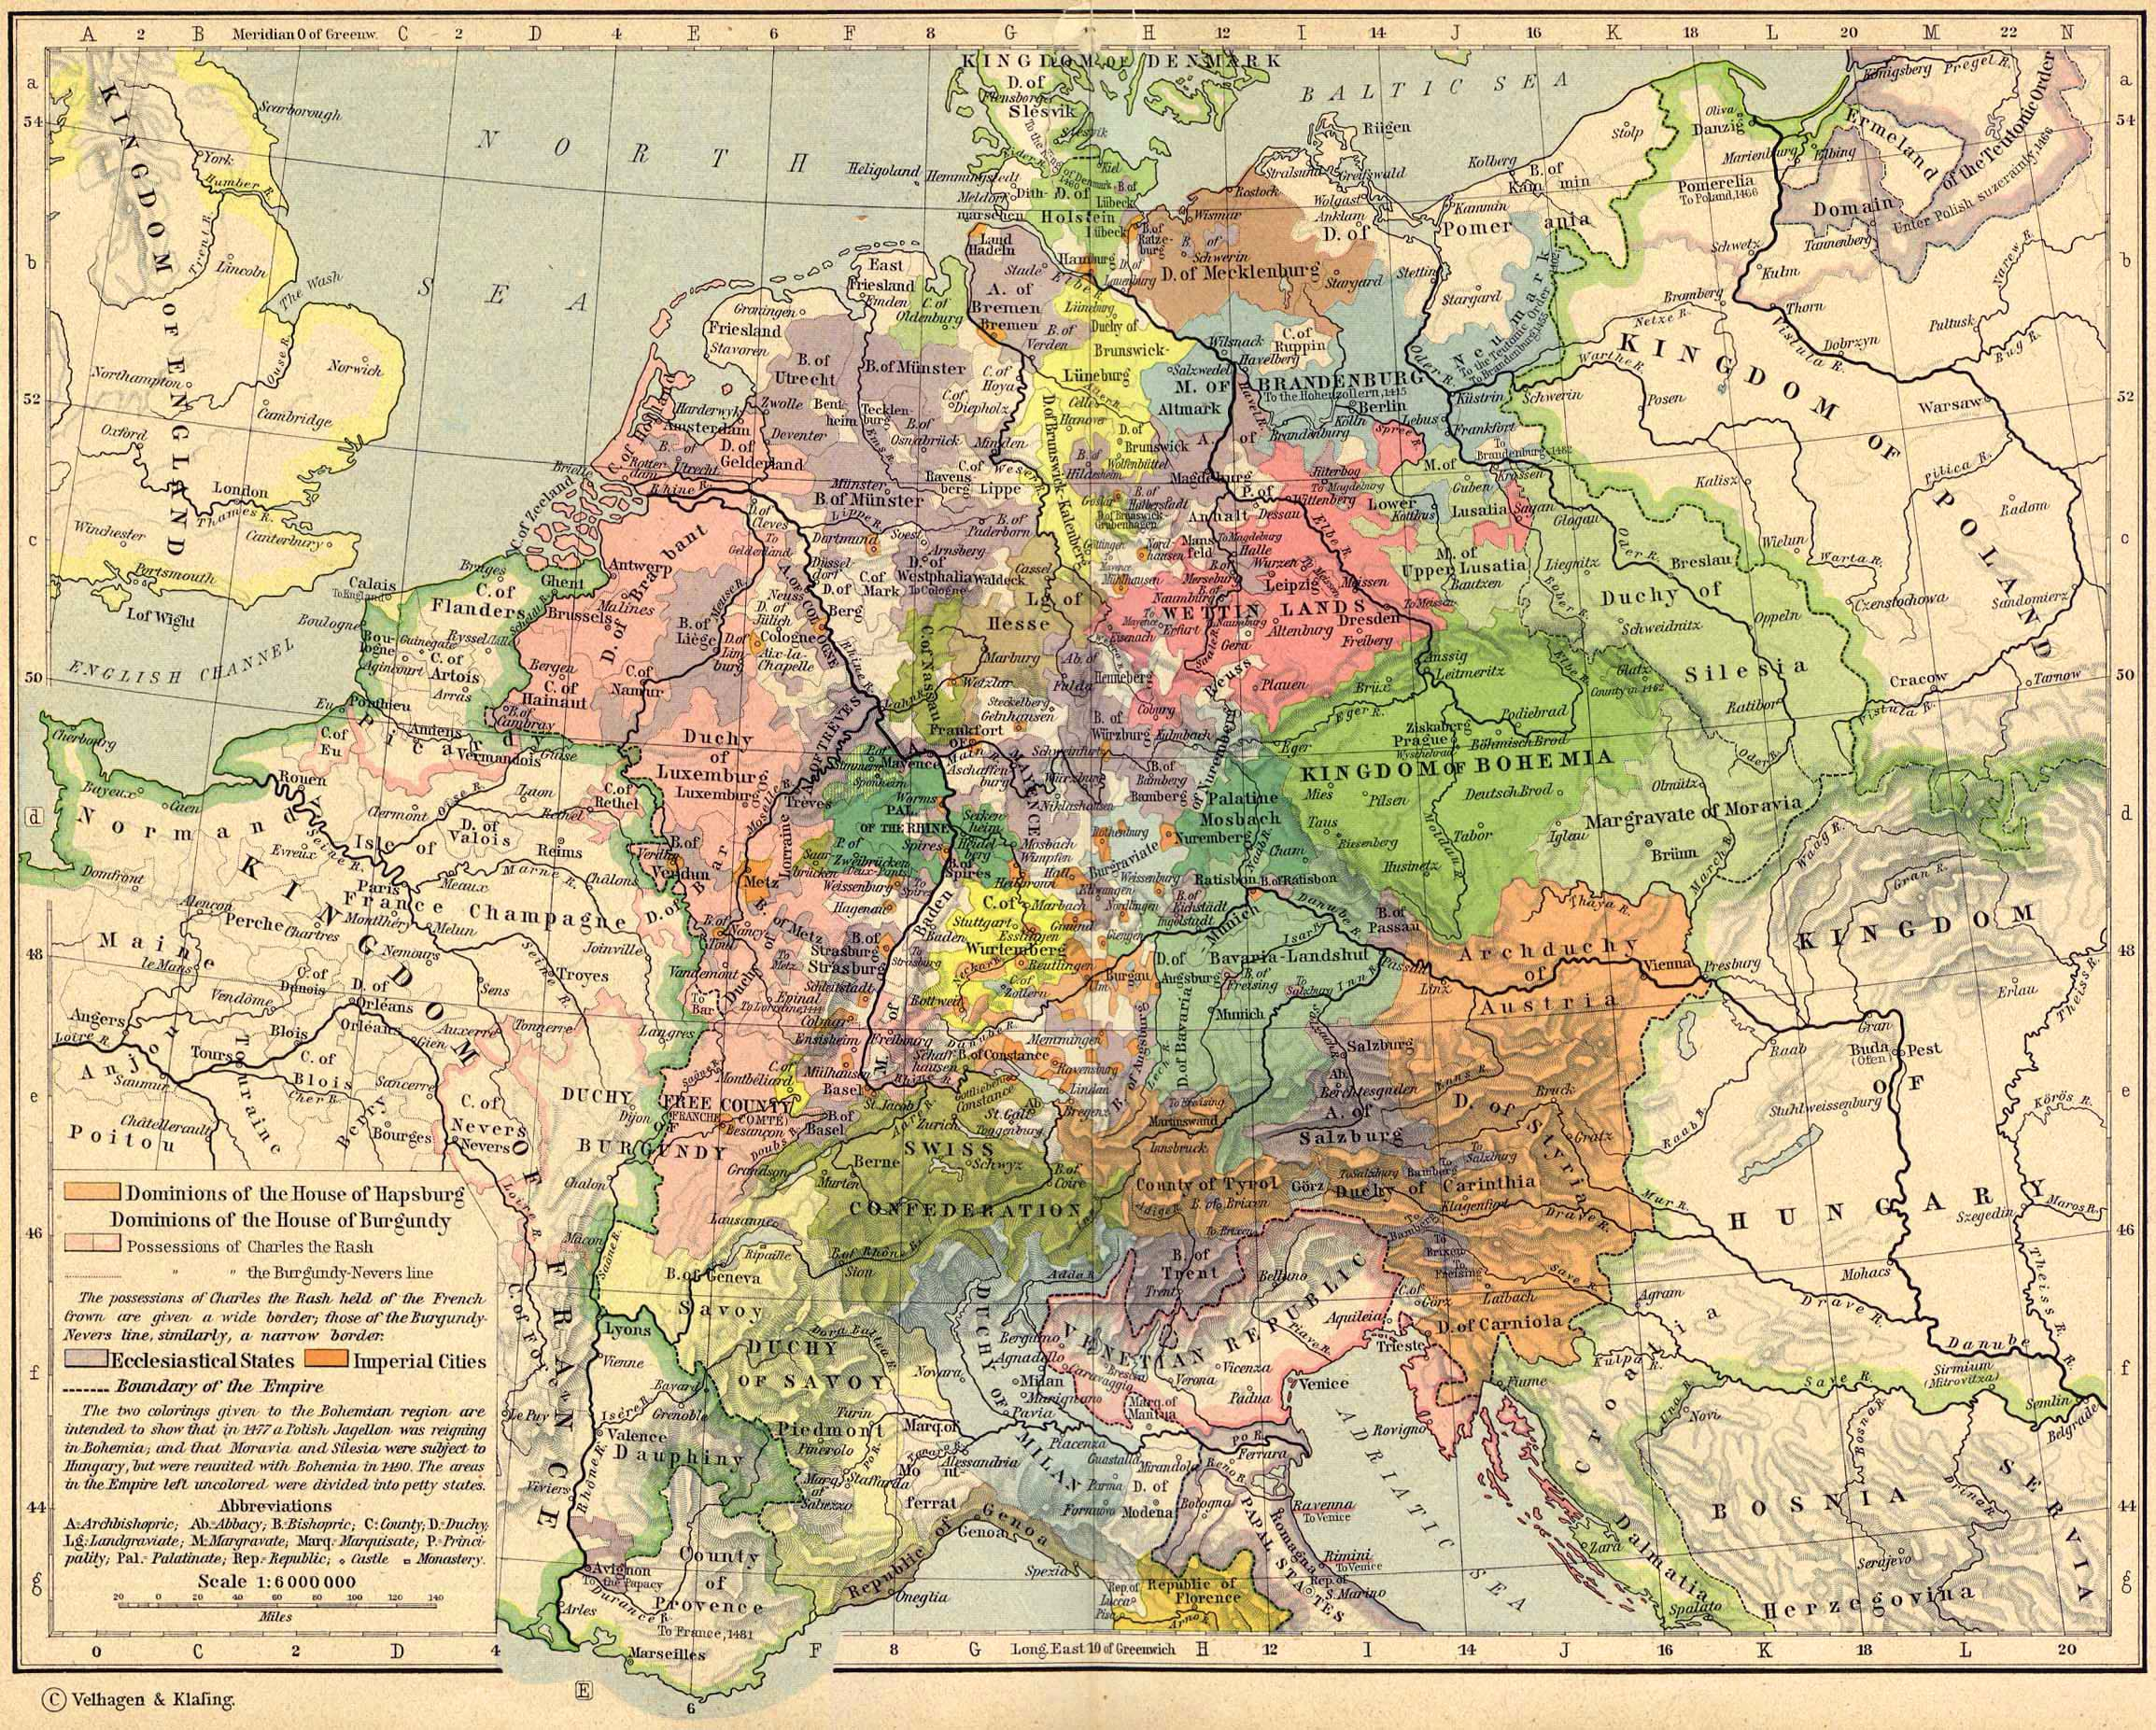 Map of Central Europe about 1477